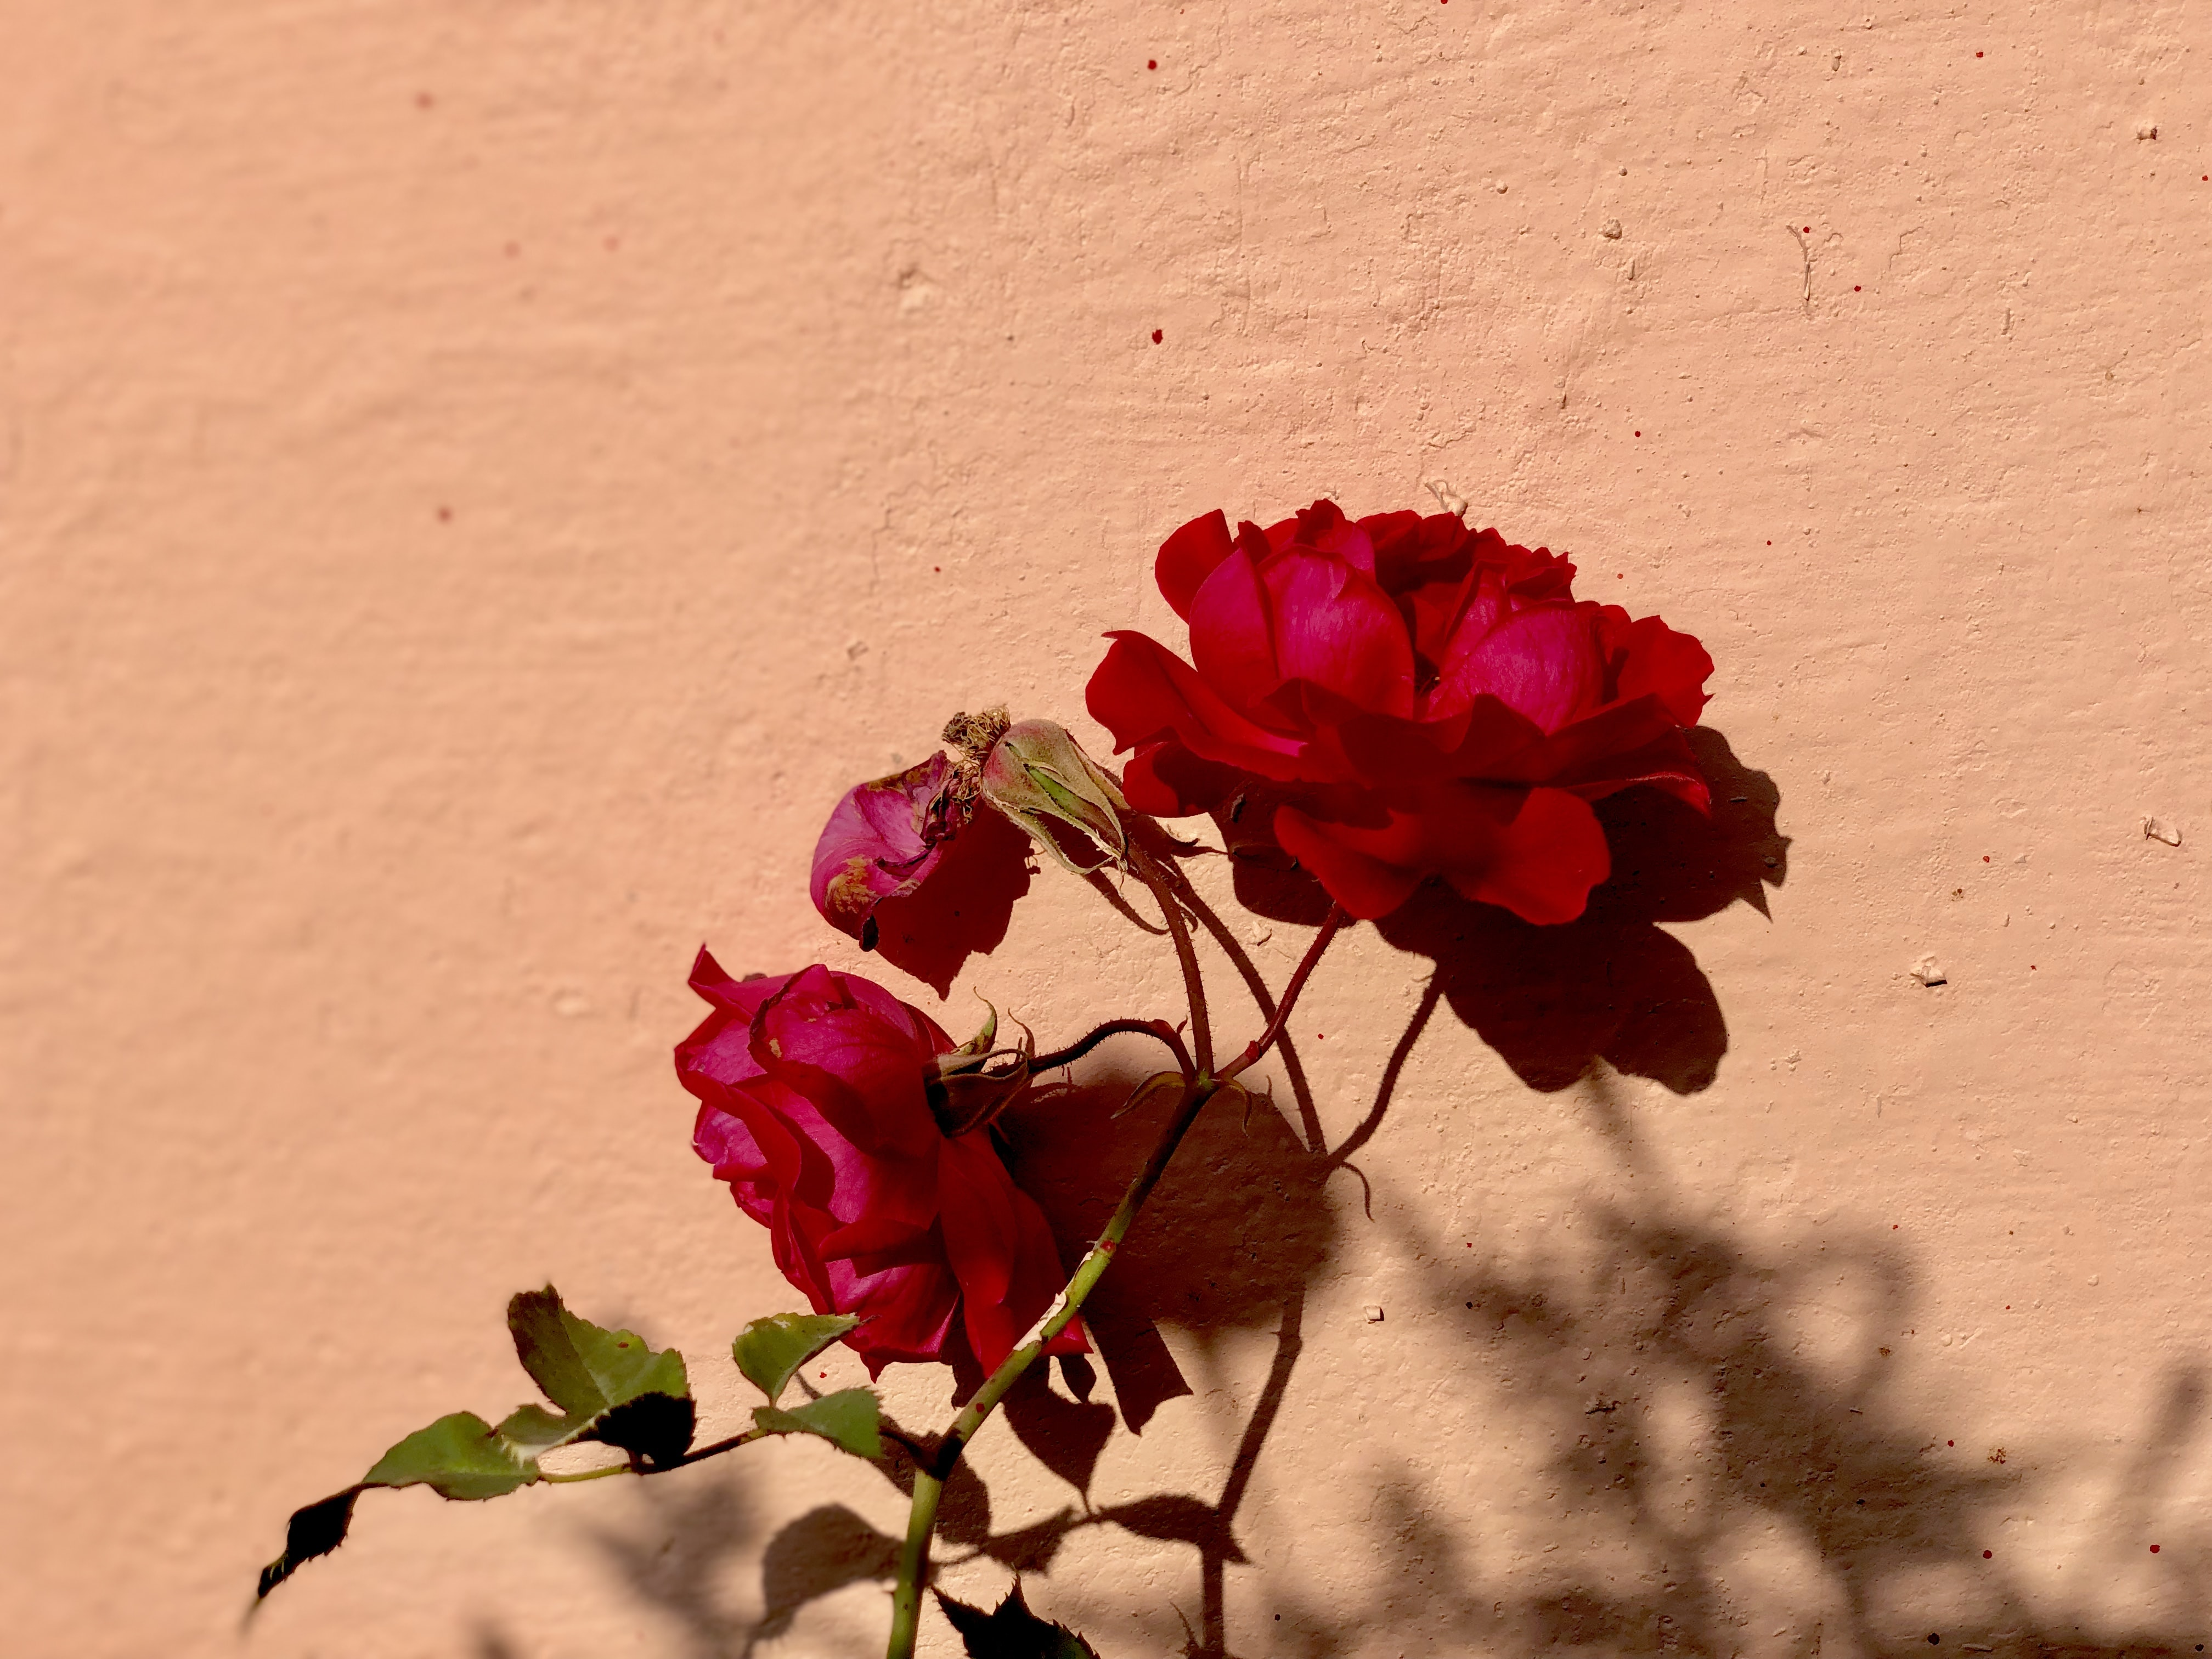 red and green petaled flowers